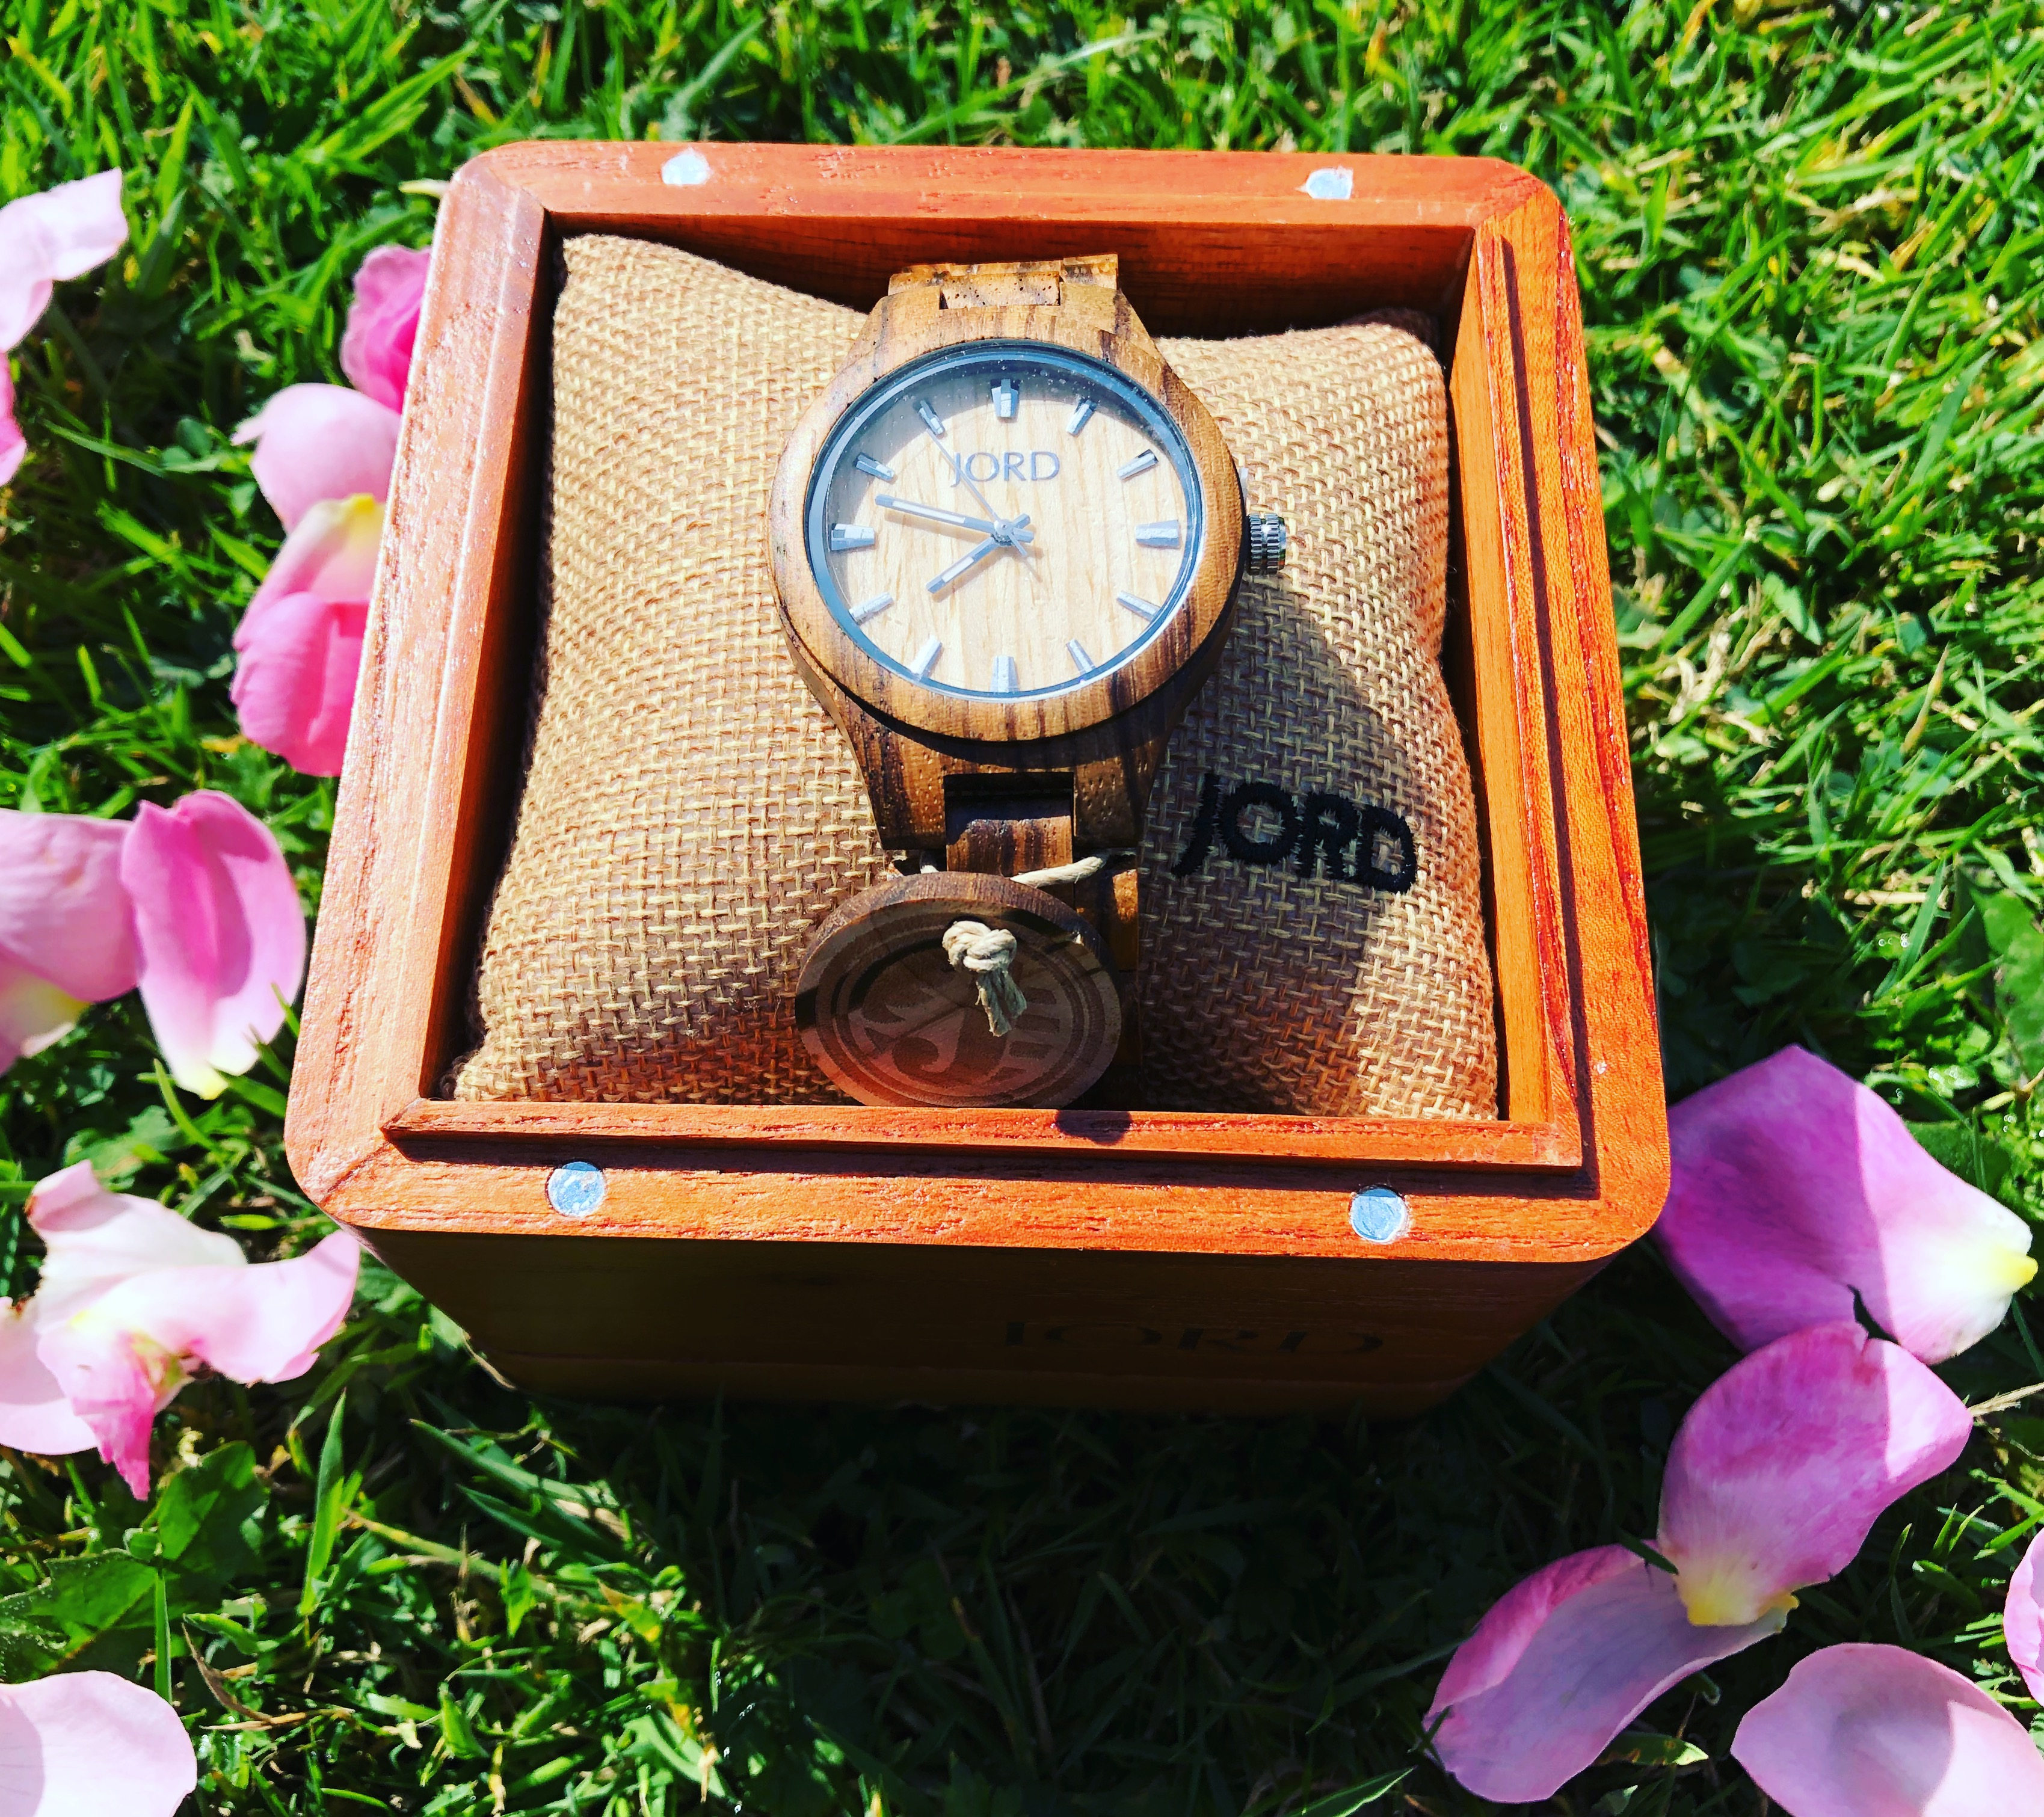 Finding the time – giveaway and review of Jord watch